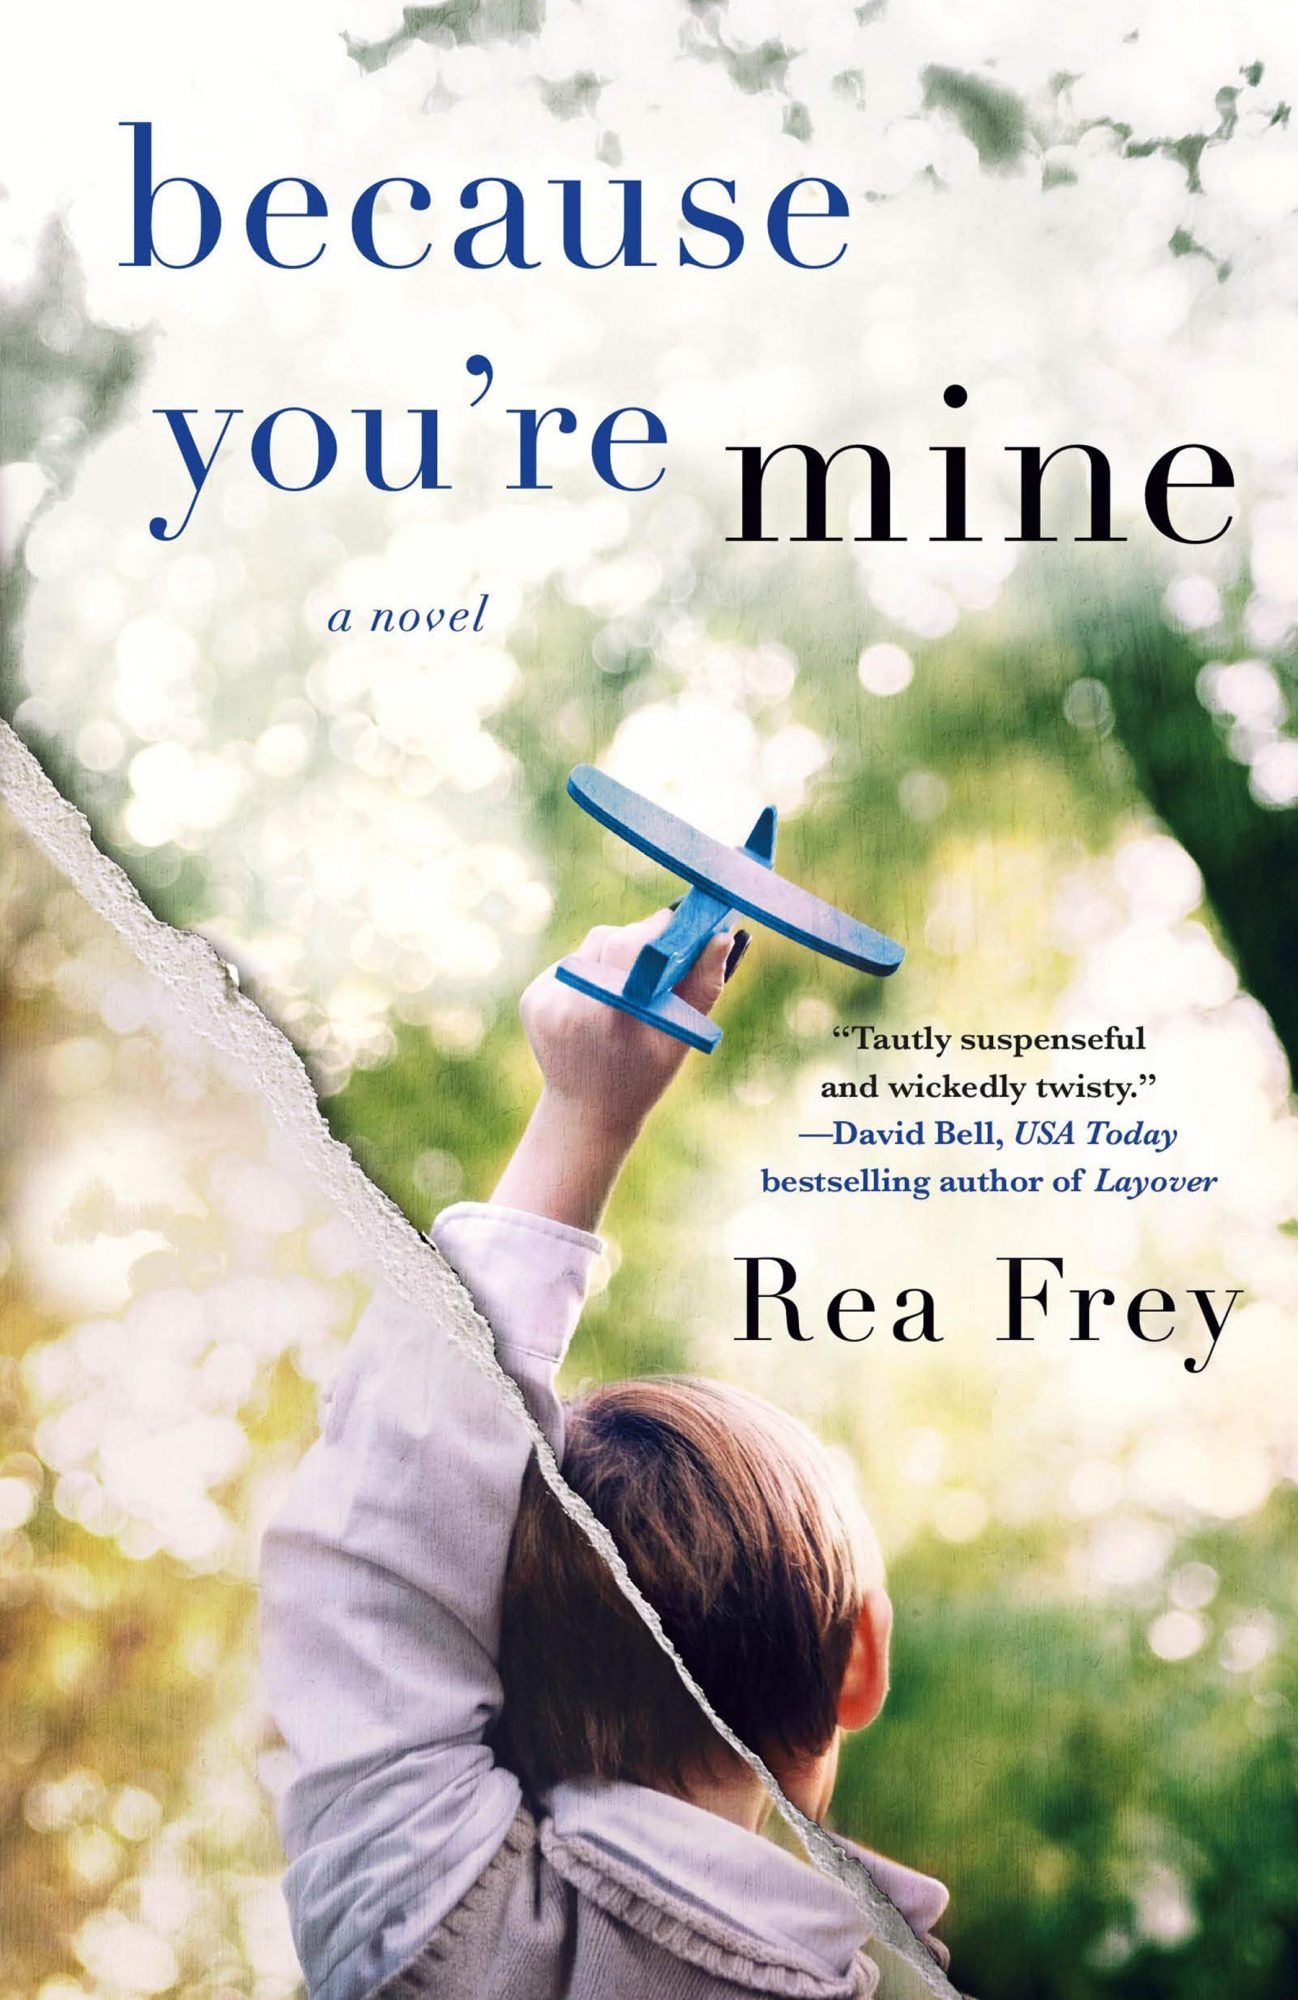 Because-You're-Mine-by-Rea-Frey